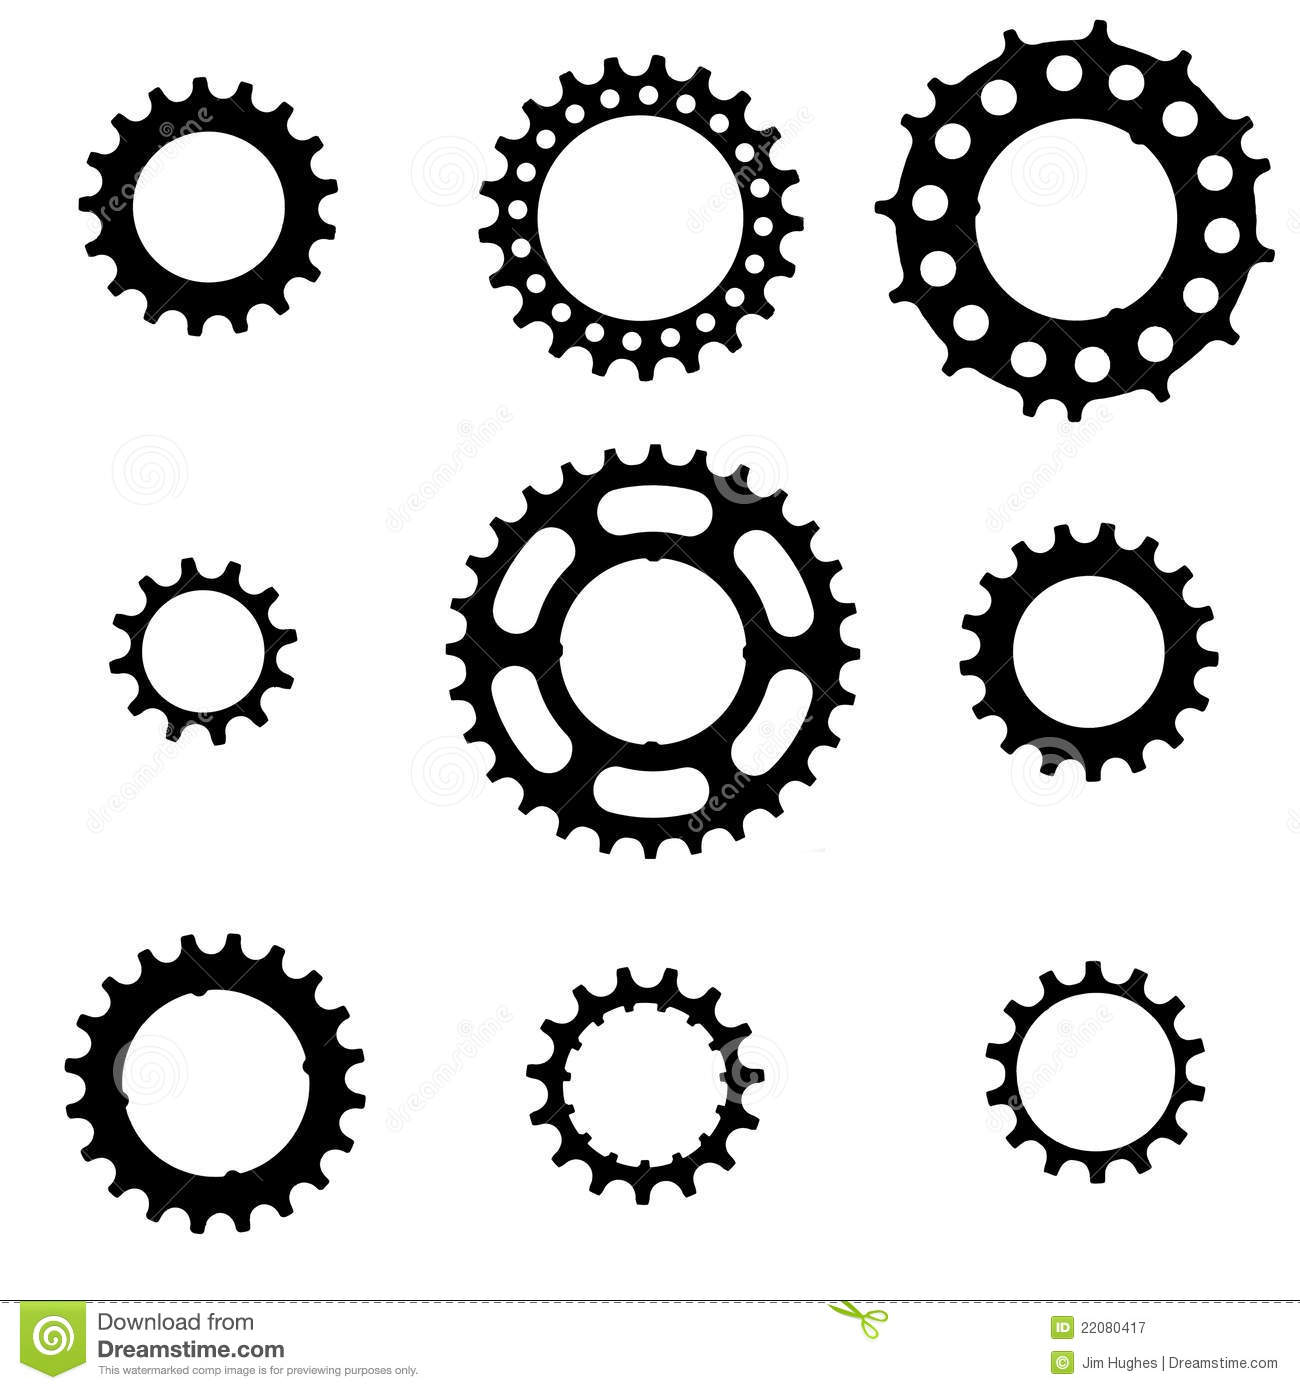 Index additionally Royalty Free Stock Photography Bicycle Cogs Image22080417 likewise Index also 124911 further Tolkien Dwarf Runes. on us detailed map download